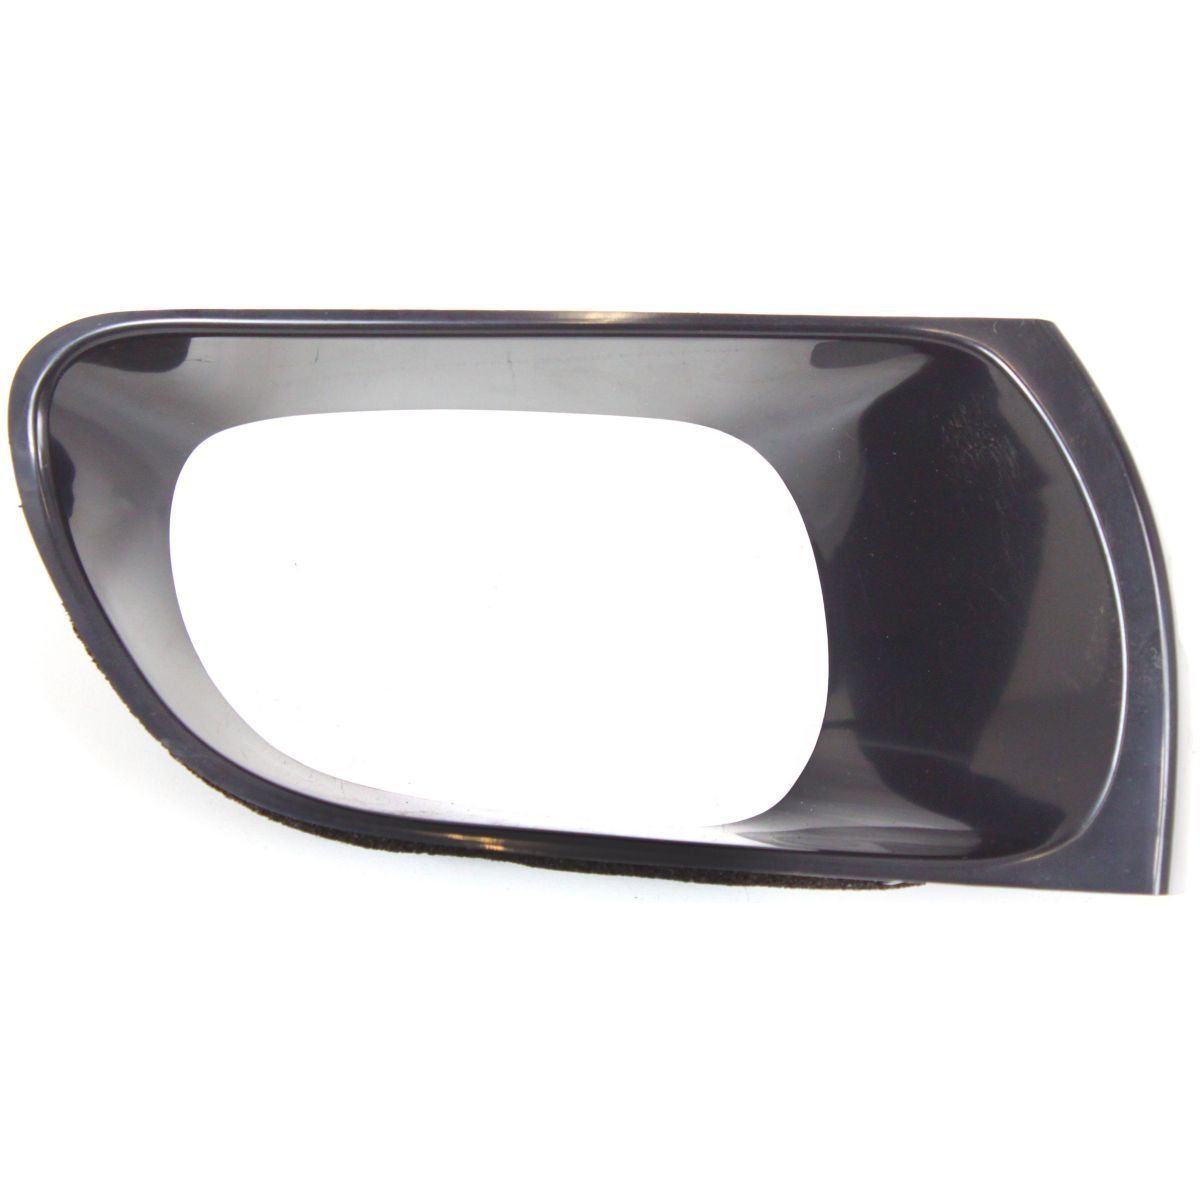 OE Replacement Toyota Avalon Front Passenger Side Bumper Insert Partslink Number TO1039122 Unknown